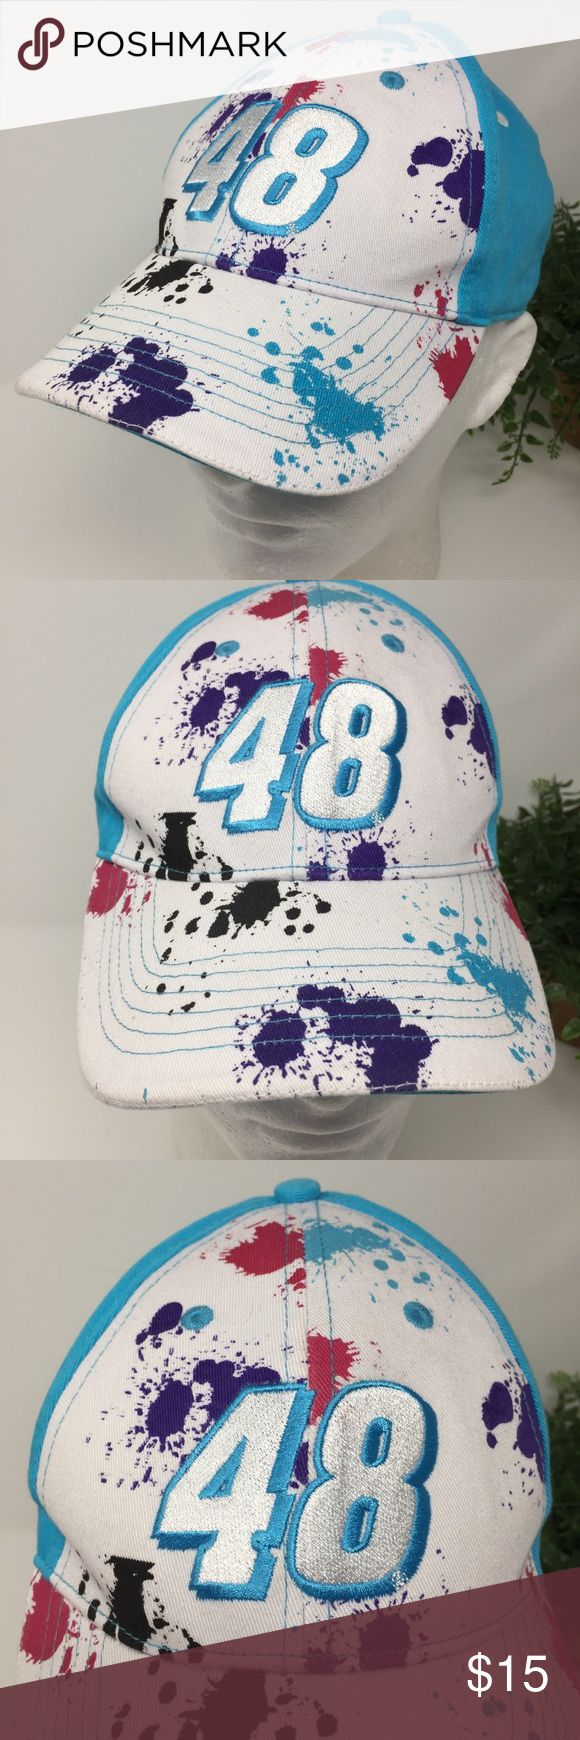 """Jimmie Johnson 48 NASCAR Hat Chase Authentics This listing is for a Jimmie Johnson 48 NASCAR Baseball Hat Chase Authentics OS  This is a pre-owned hat that has the name """"Colby"""" written on the inside strap. I did not try to remove the name for fear of fading the hat.  Comes from a smoke free and pet free environment. Hat will be shipped in a box to prevent it from from getting crushed. Chase Authentics Accessories Hats"""